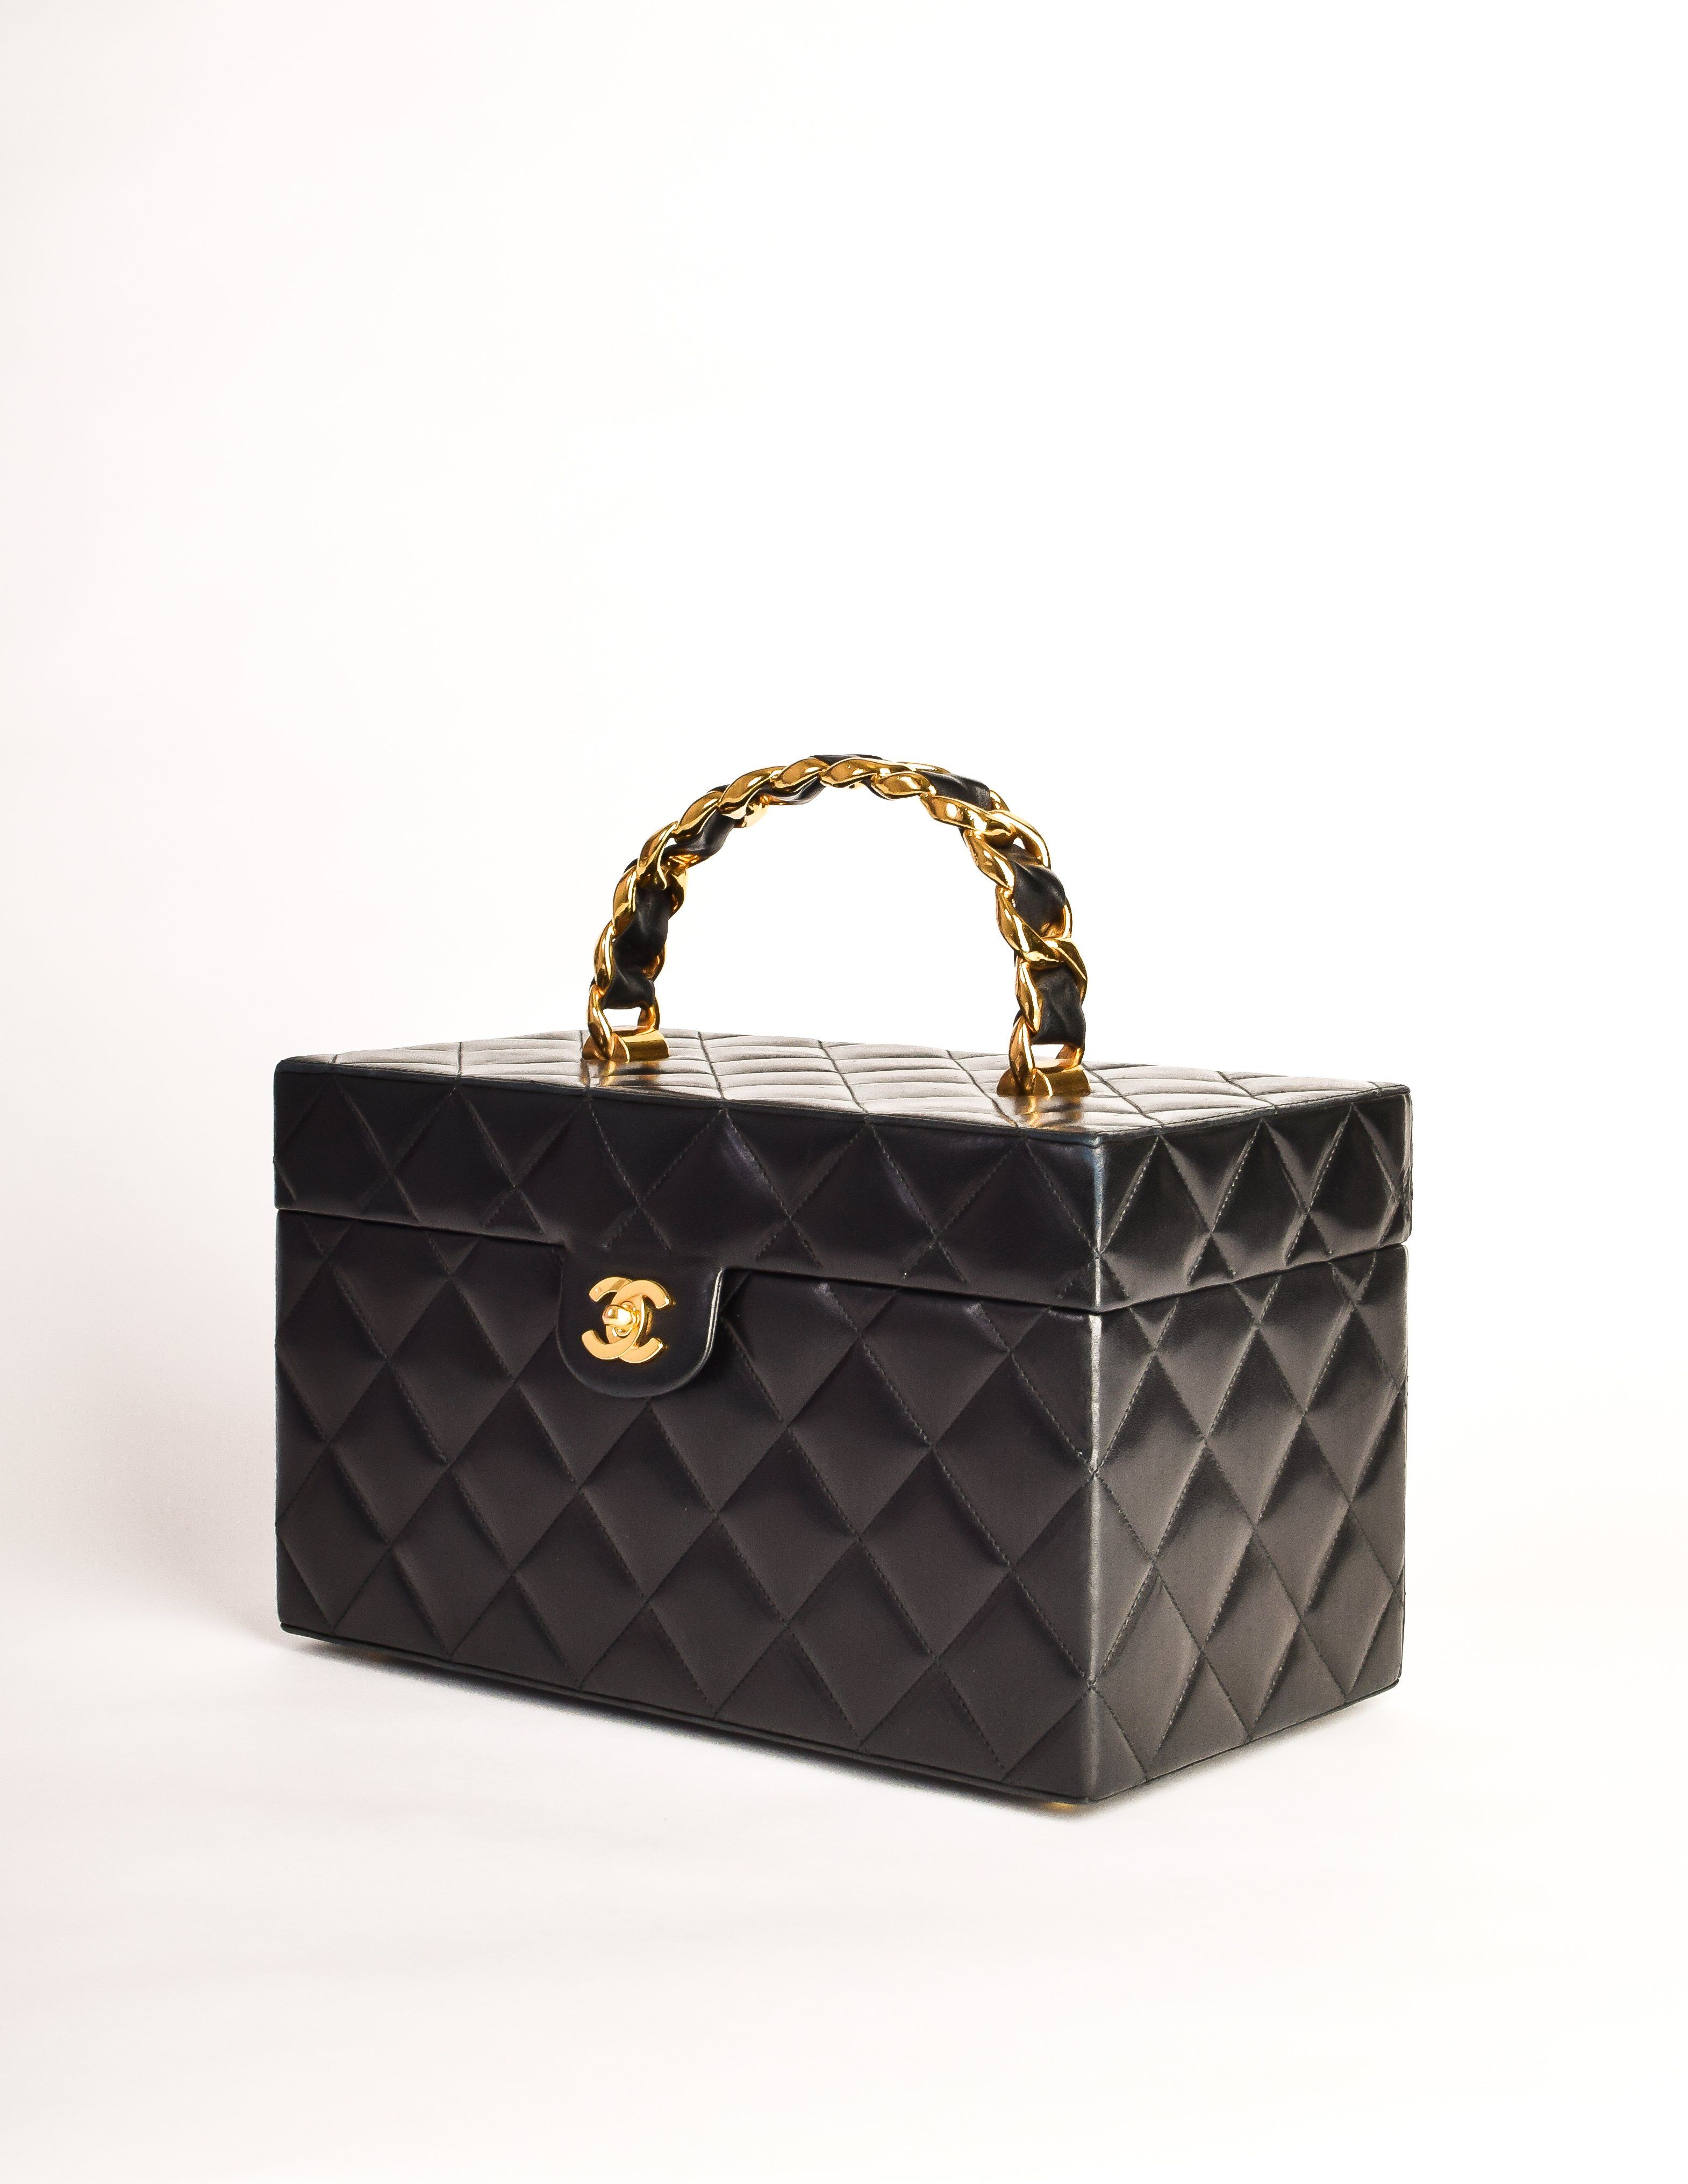 Chanel Vintage Black Quilted Lambskin Cosmetic Bag Train